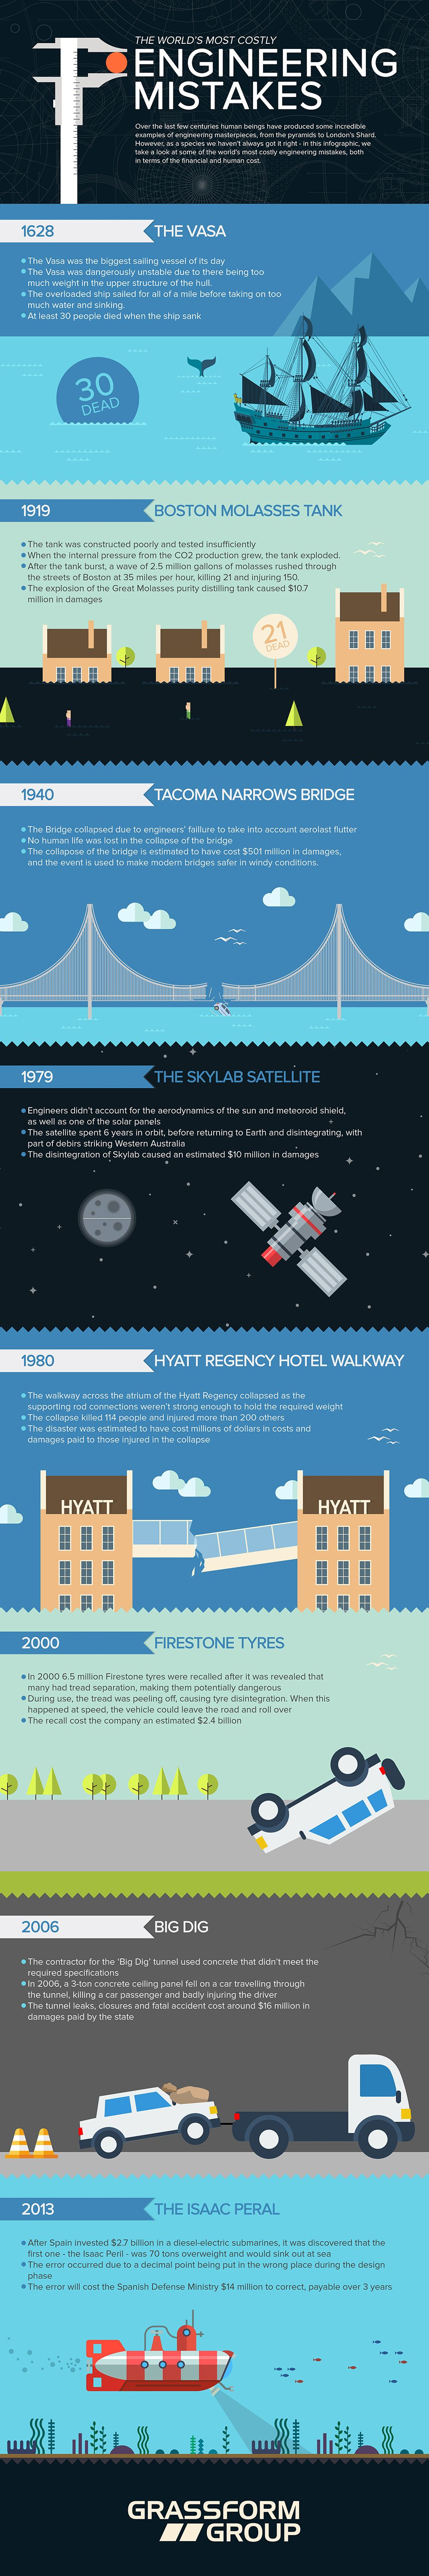 Devastating Engineering Mistakes In History Infographic